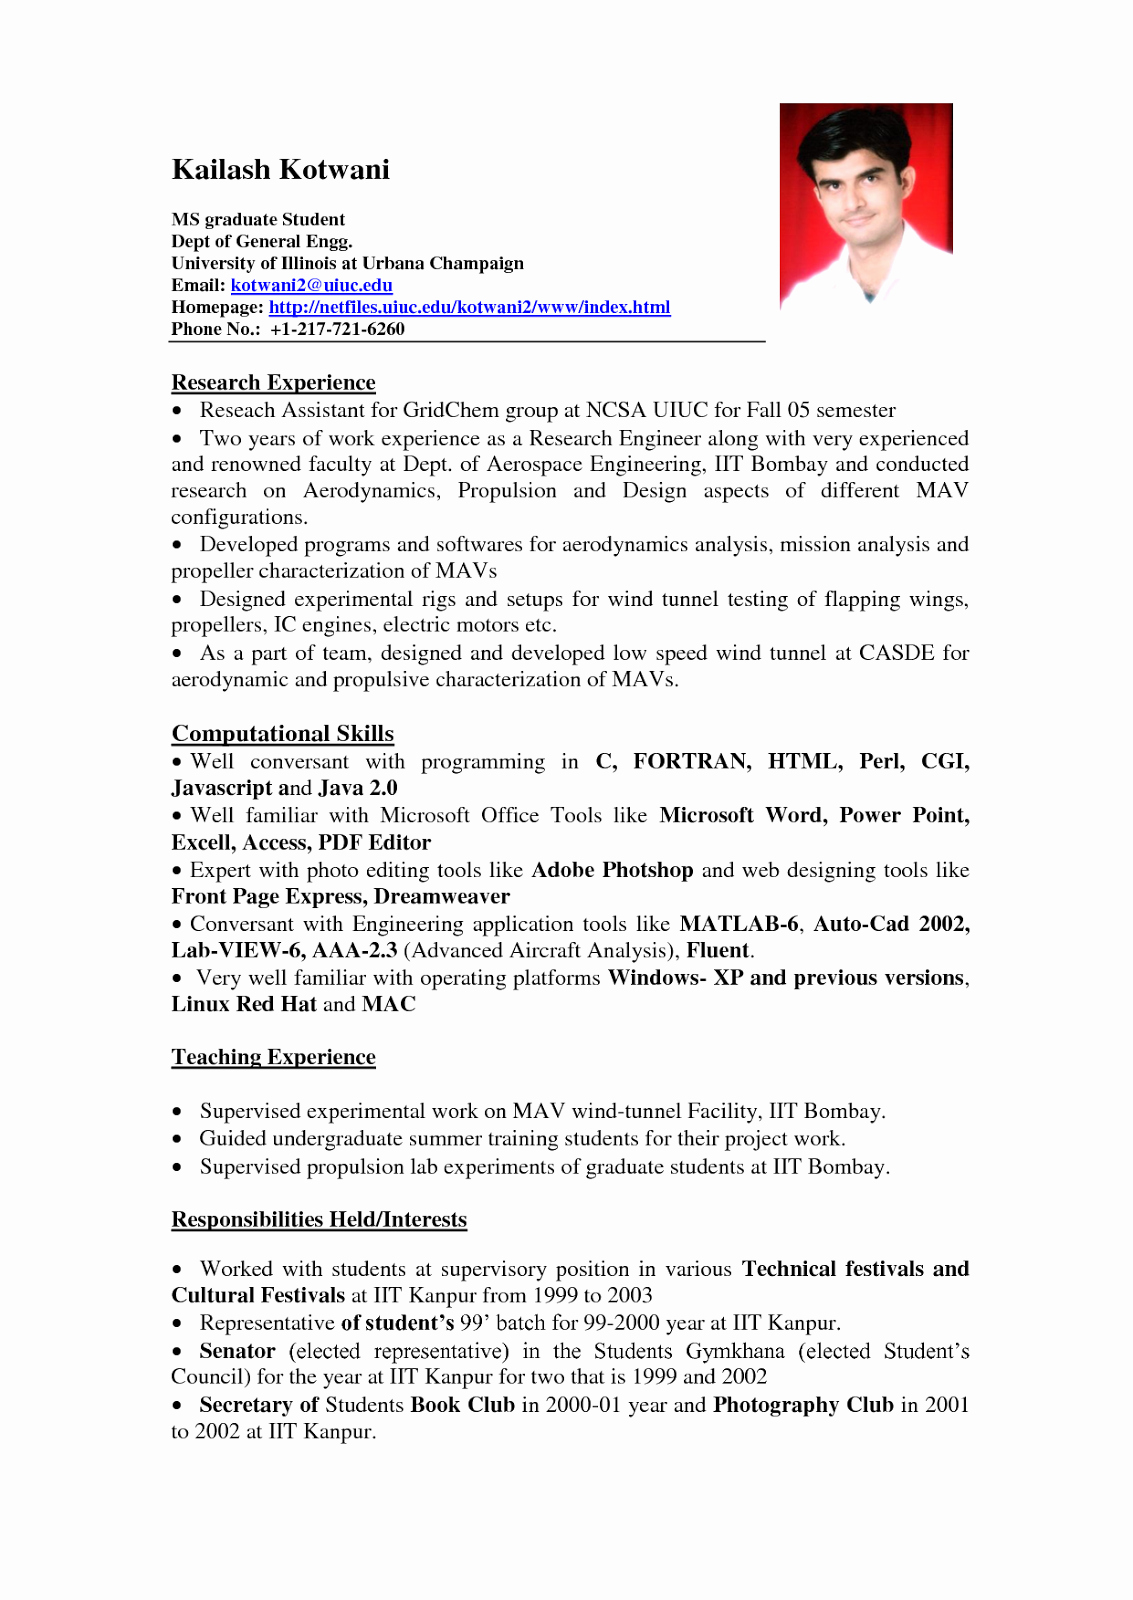 A Template for A Resume Luxury Standard Resume format for Experienced – Perfect Resume format